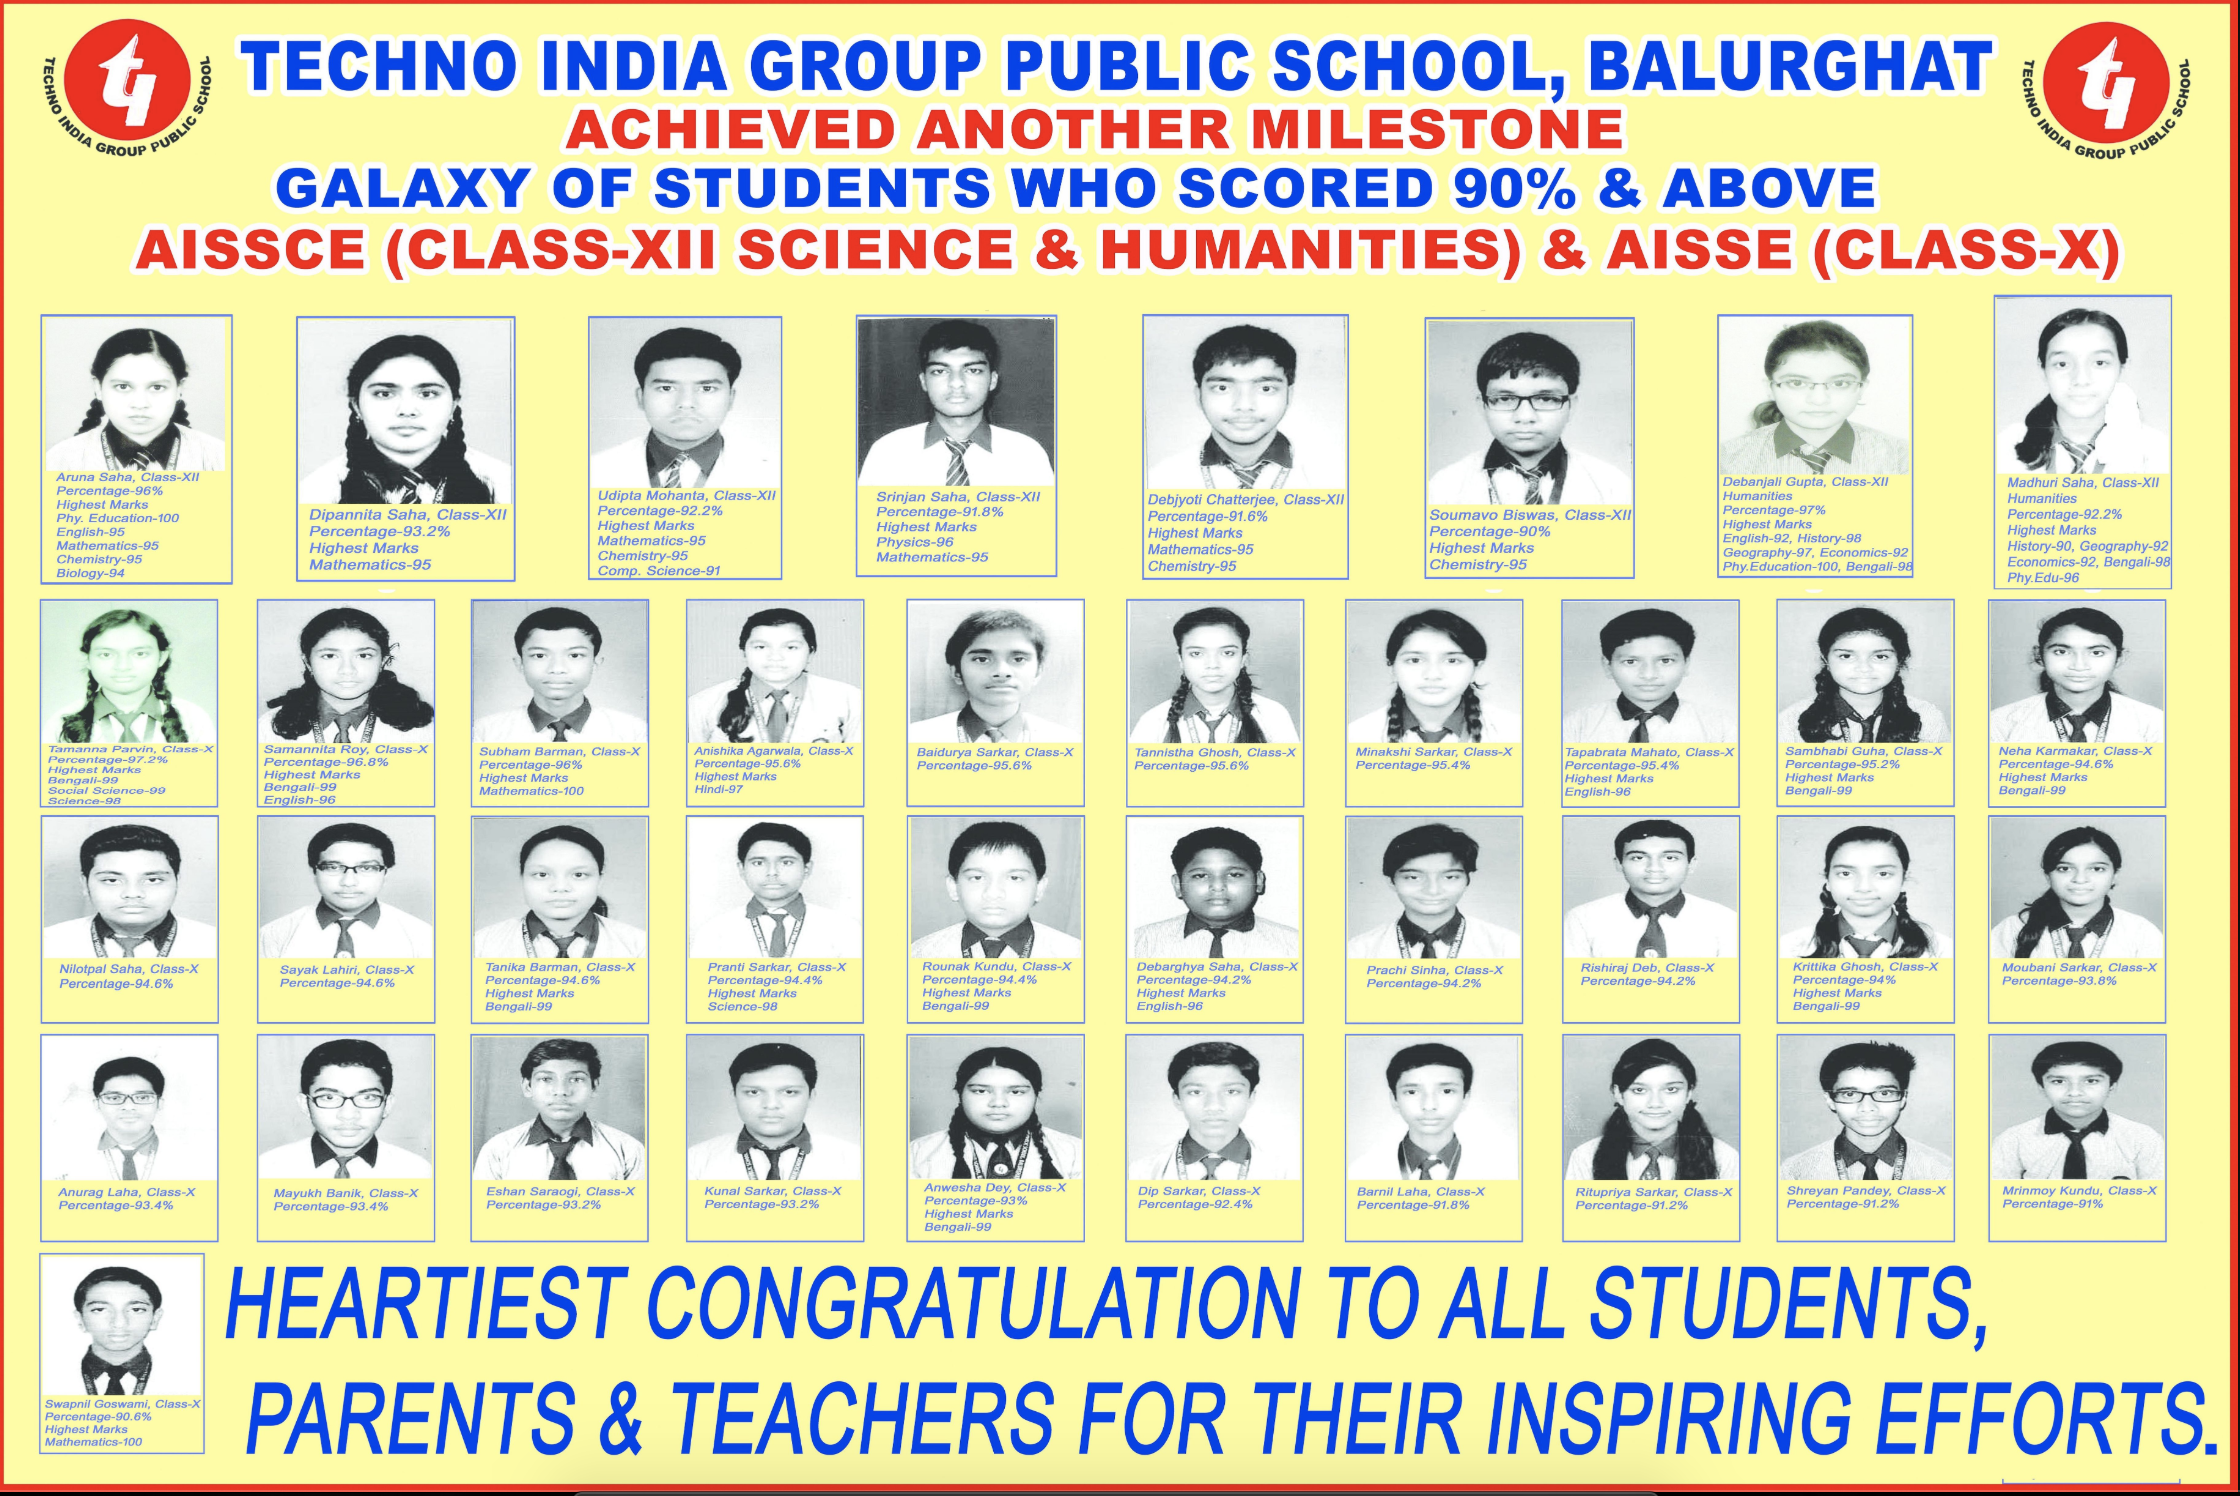 Galaxy of students who scored above 90